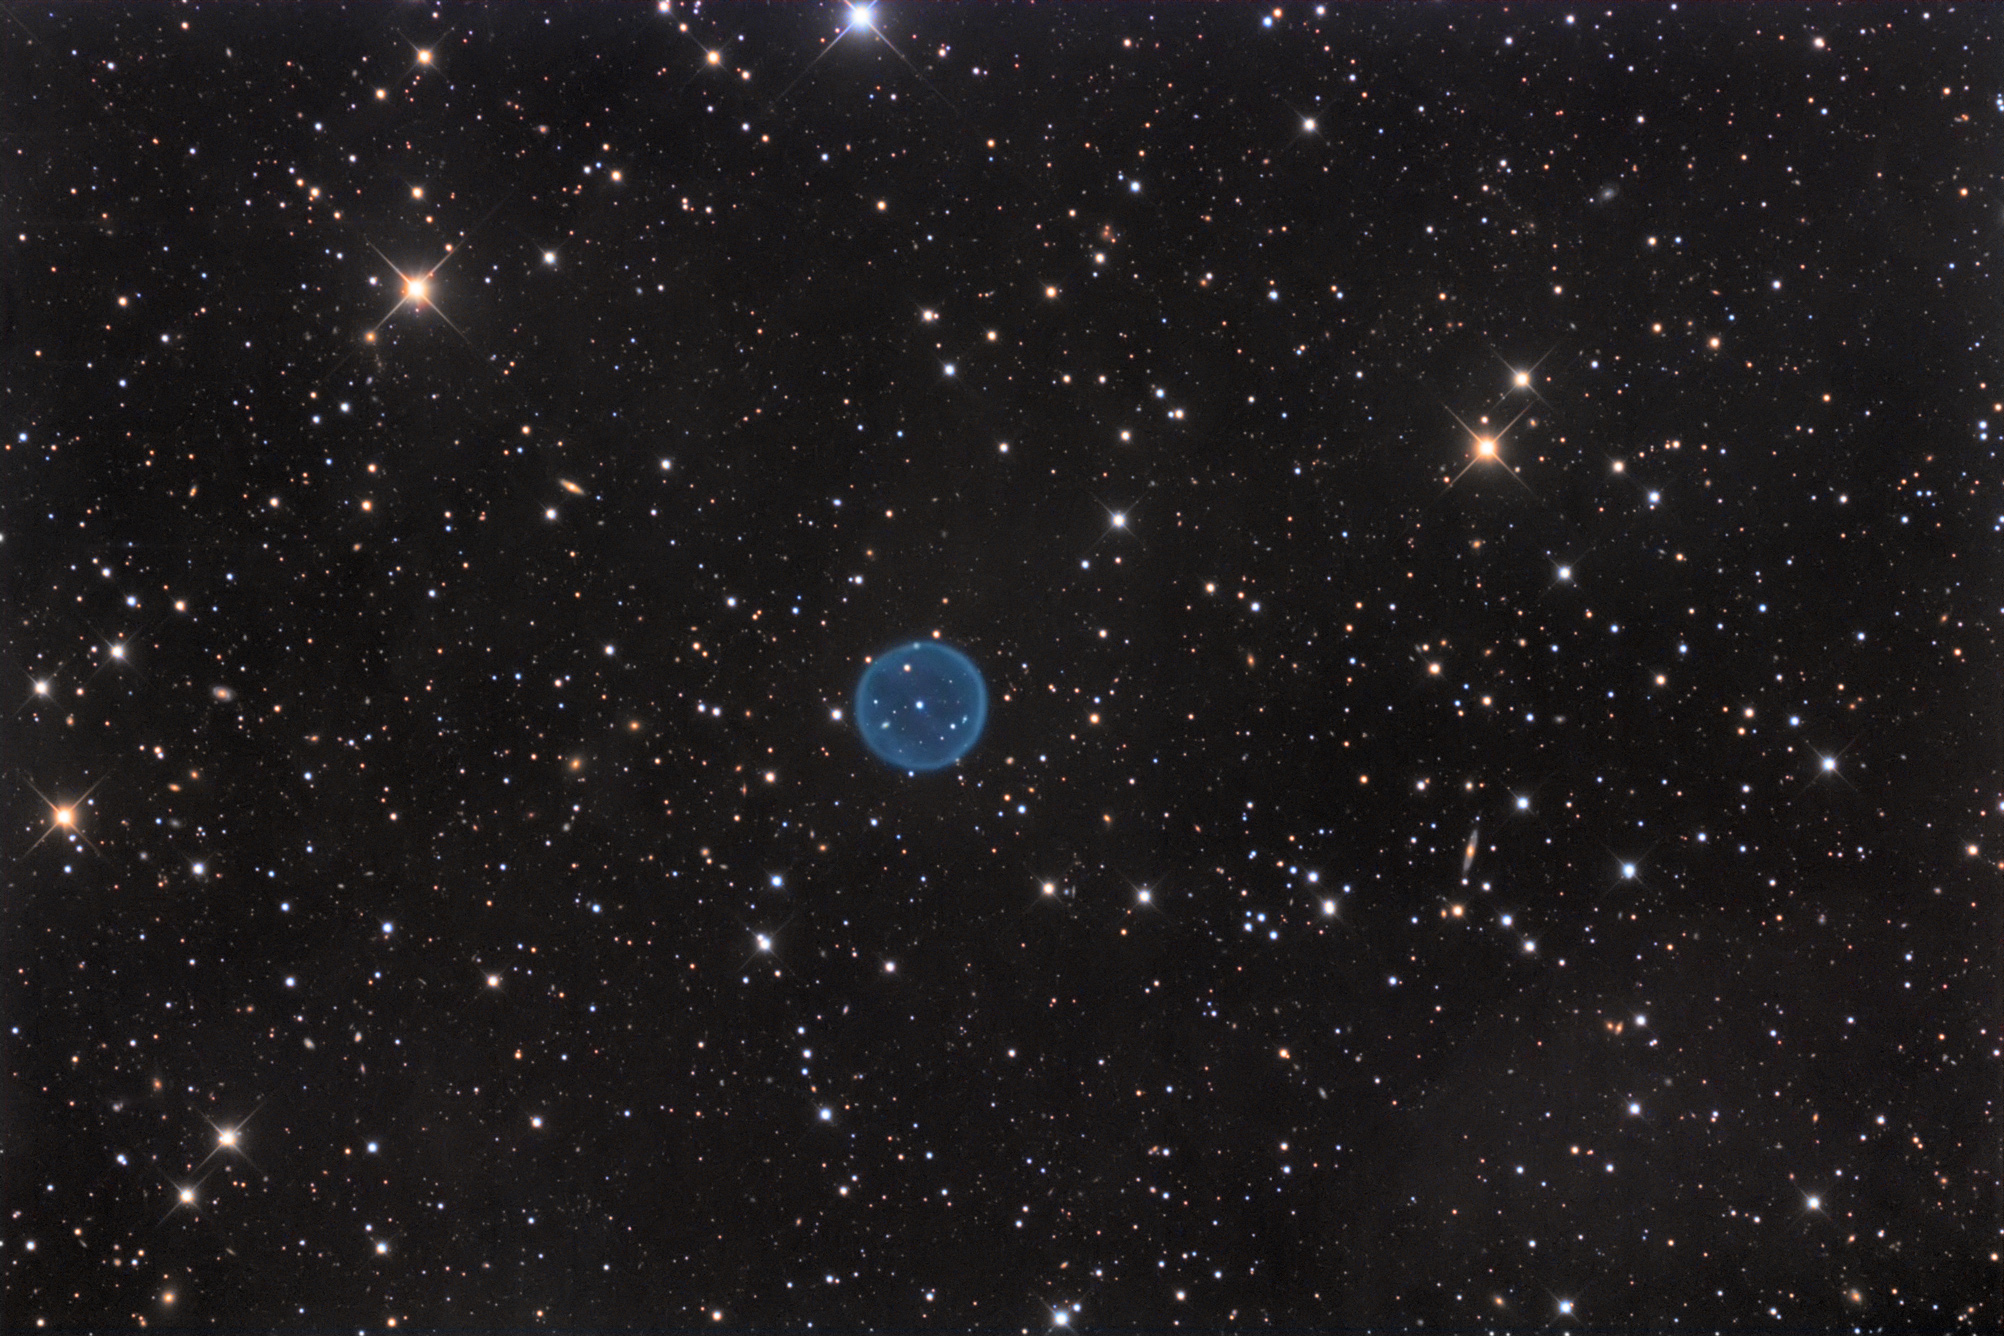 blue hercules nebula - photo #13